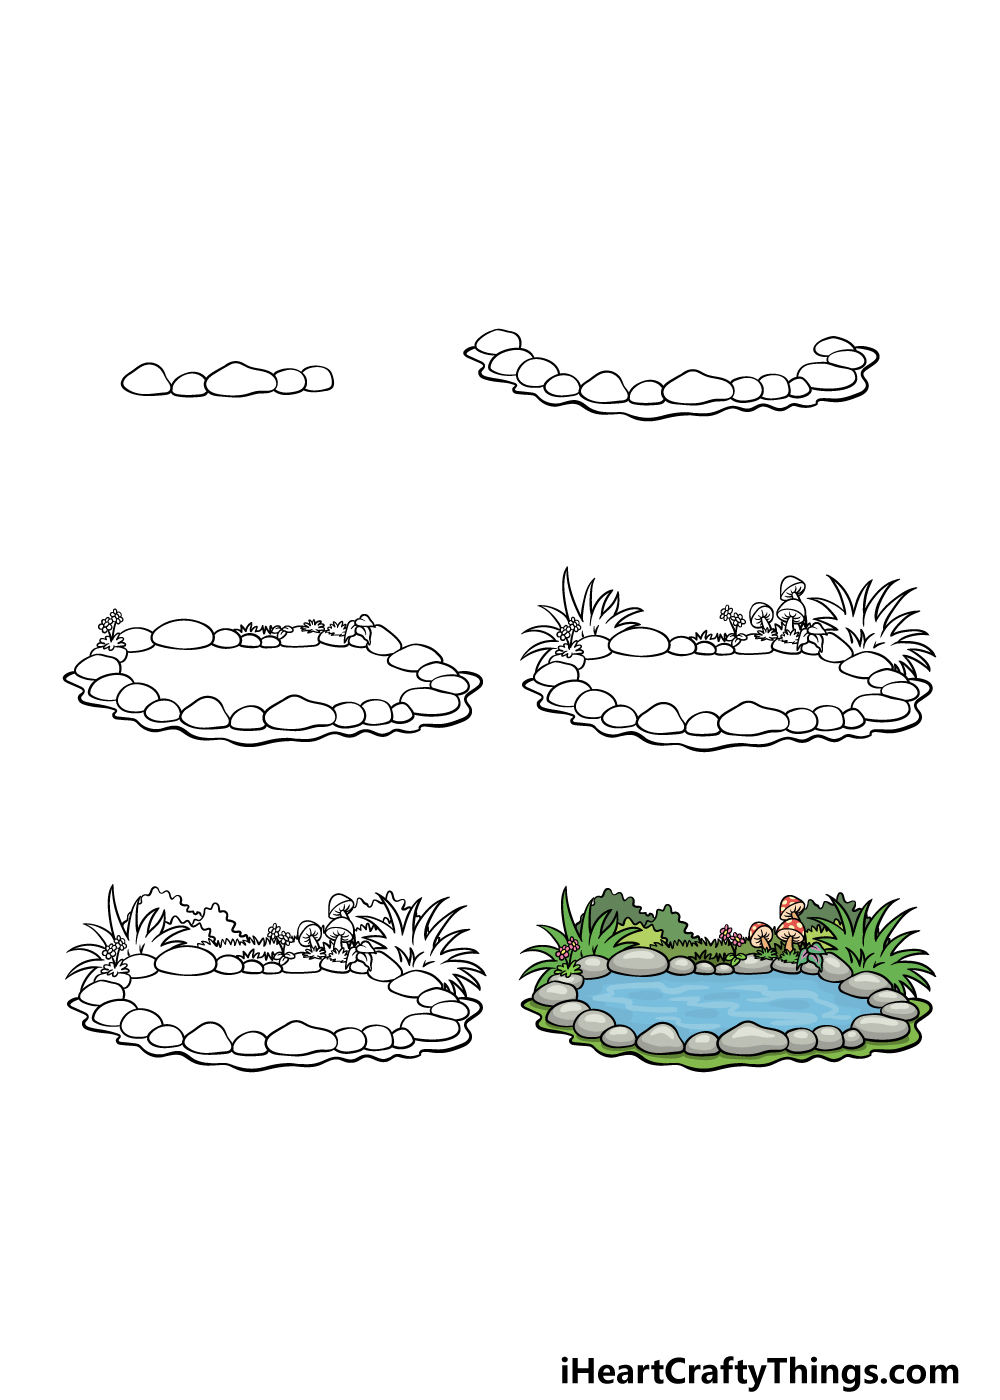 how to draw a pond in 6 steps